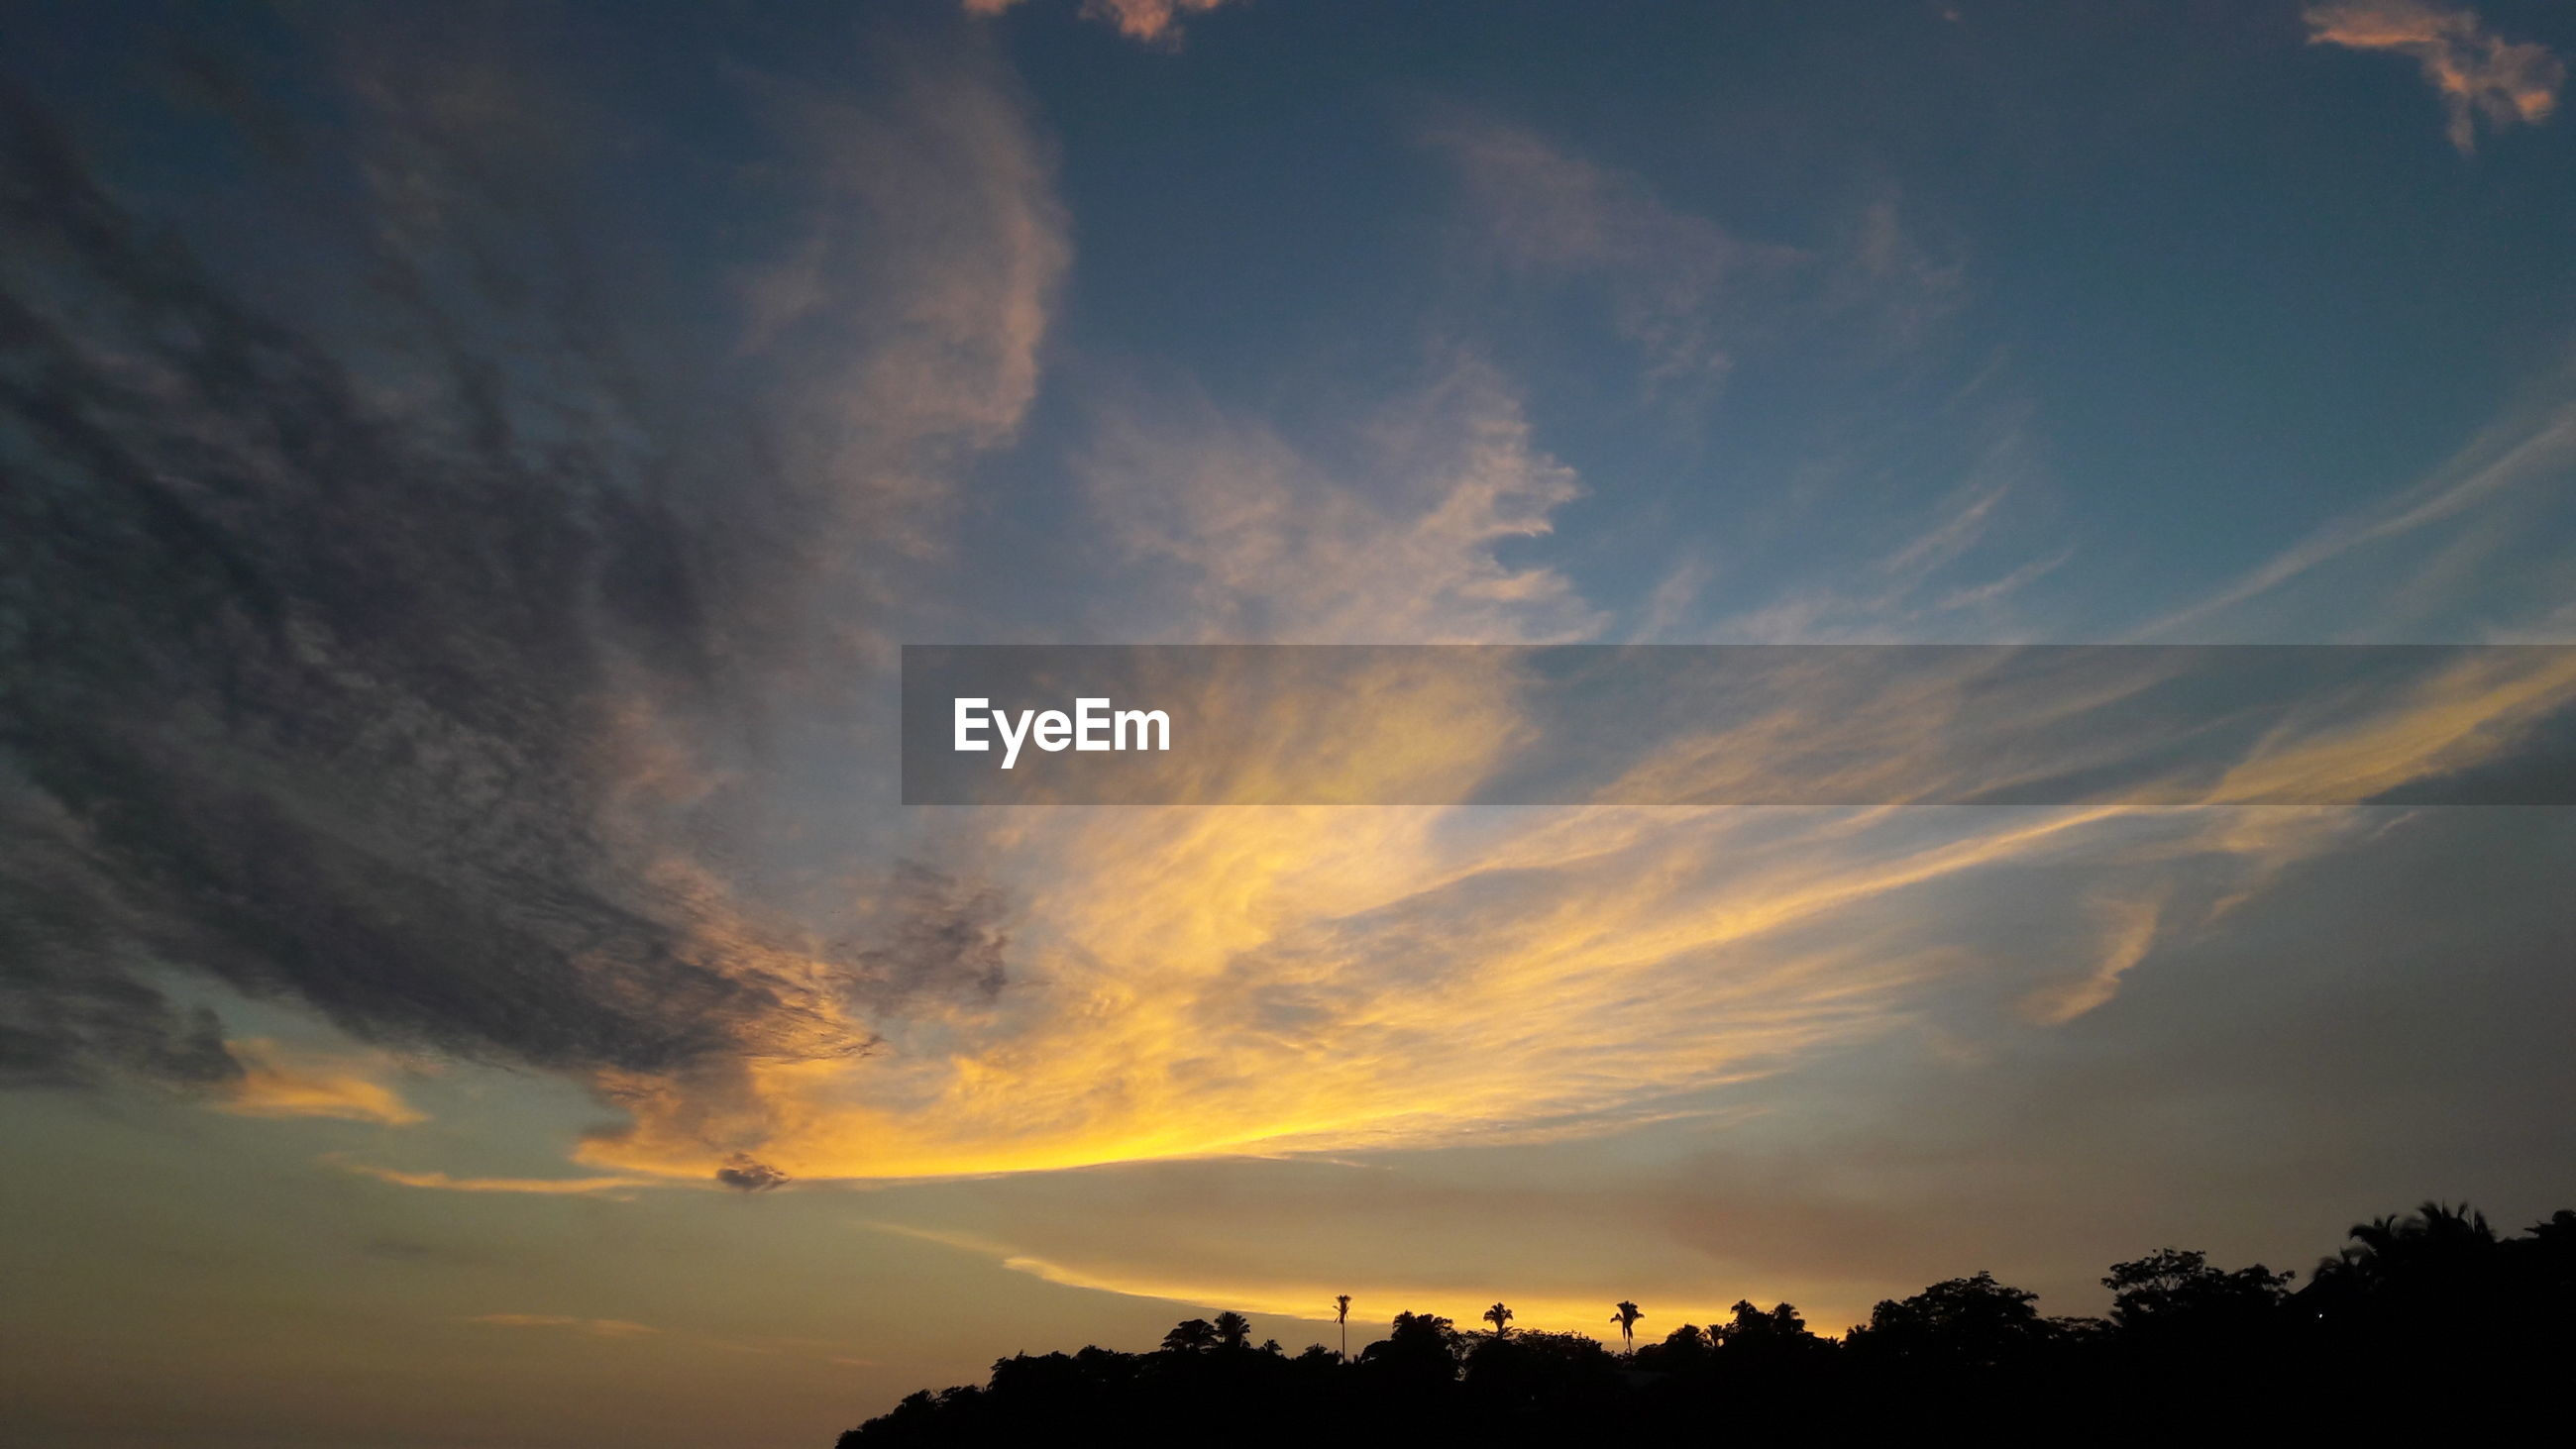 silhouette, sunset, sky, scenics, beauty in nature, cloud - sky, tranquility, tranquil scene, low angle view, nature, idyllic, dramatic sky, tree, cloud, cloudy, orange color, moody sky, outdoors, majestic, no people, weather, cloudscape, outline, overcast, dark, non-urban scene, landscape, blue